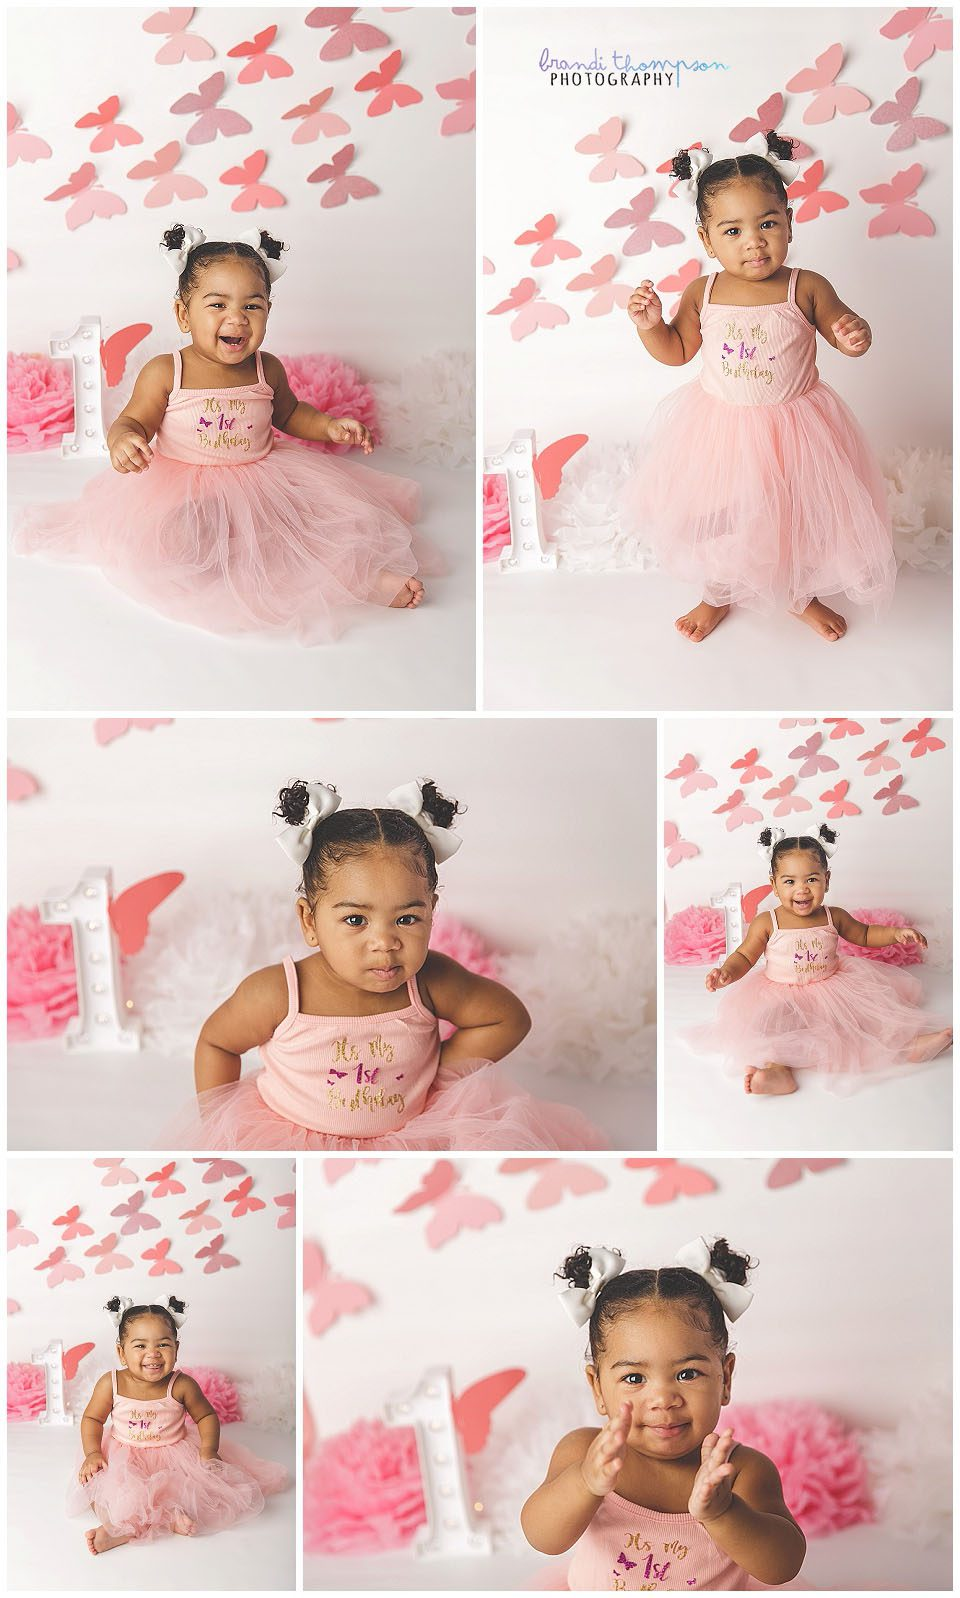 Pink and white butterfly themed cake smash with one year old girl in pink dress